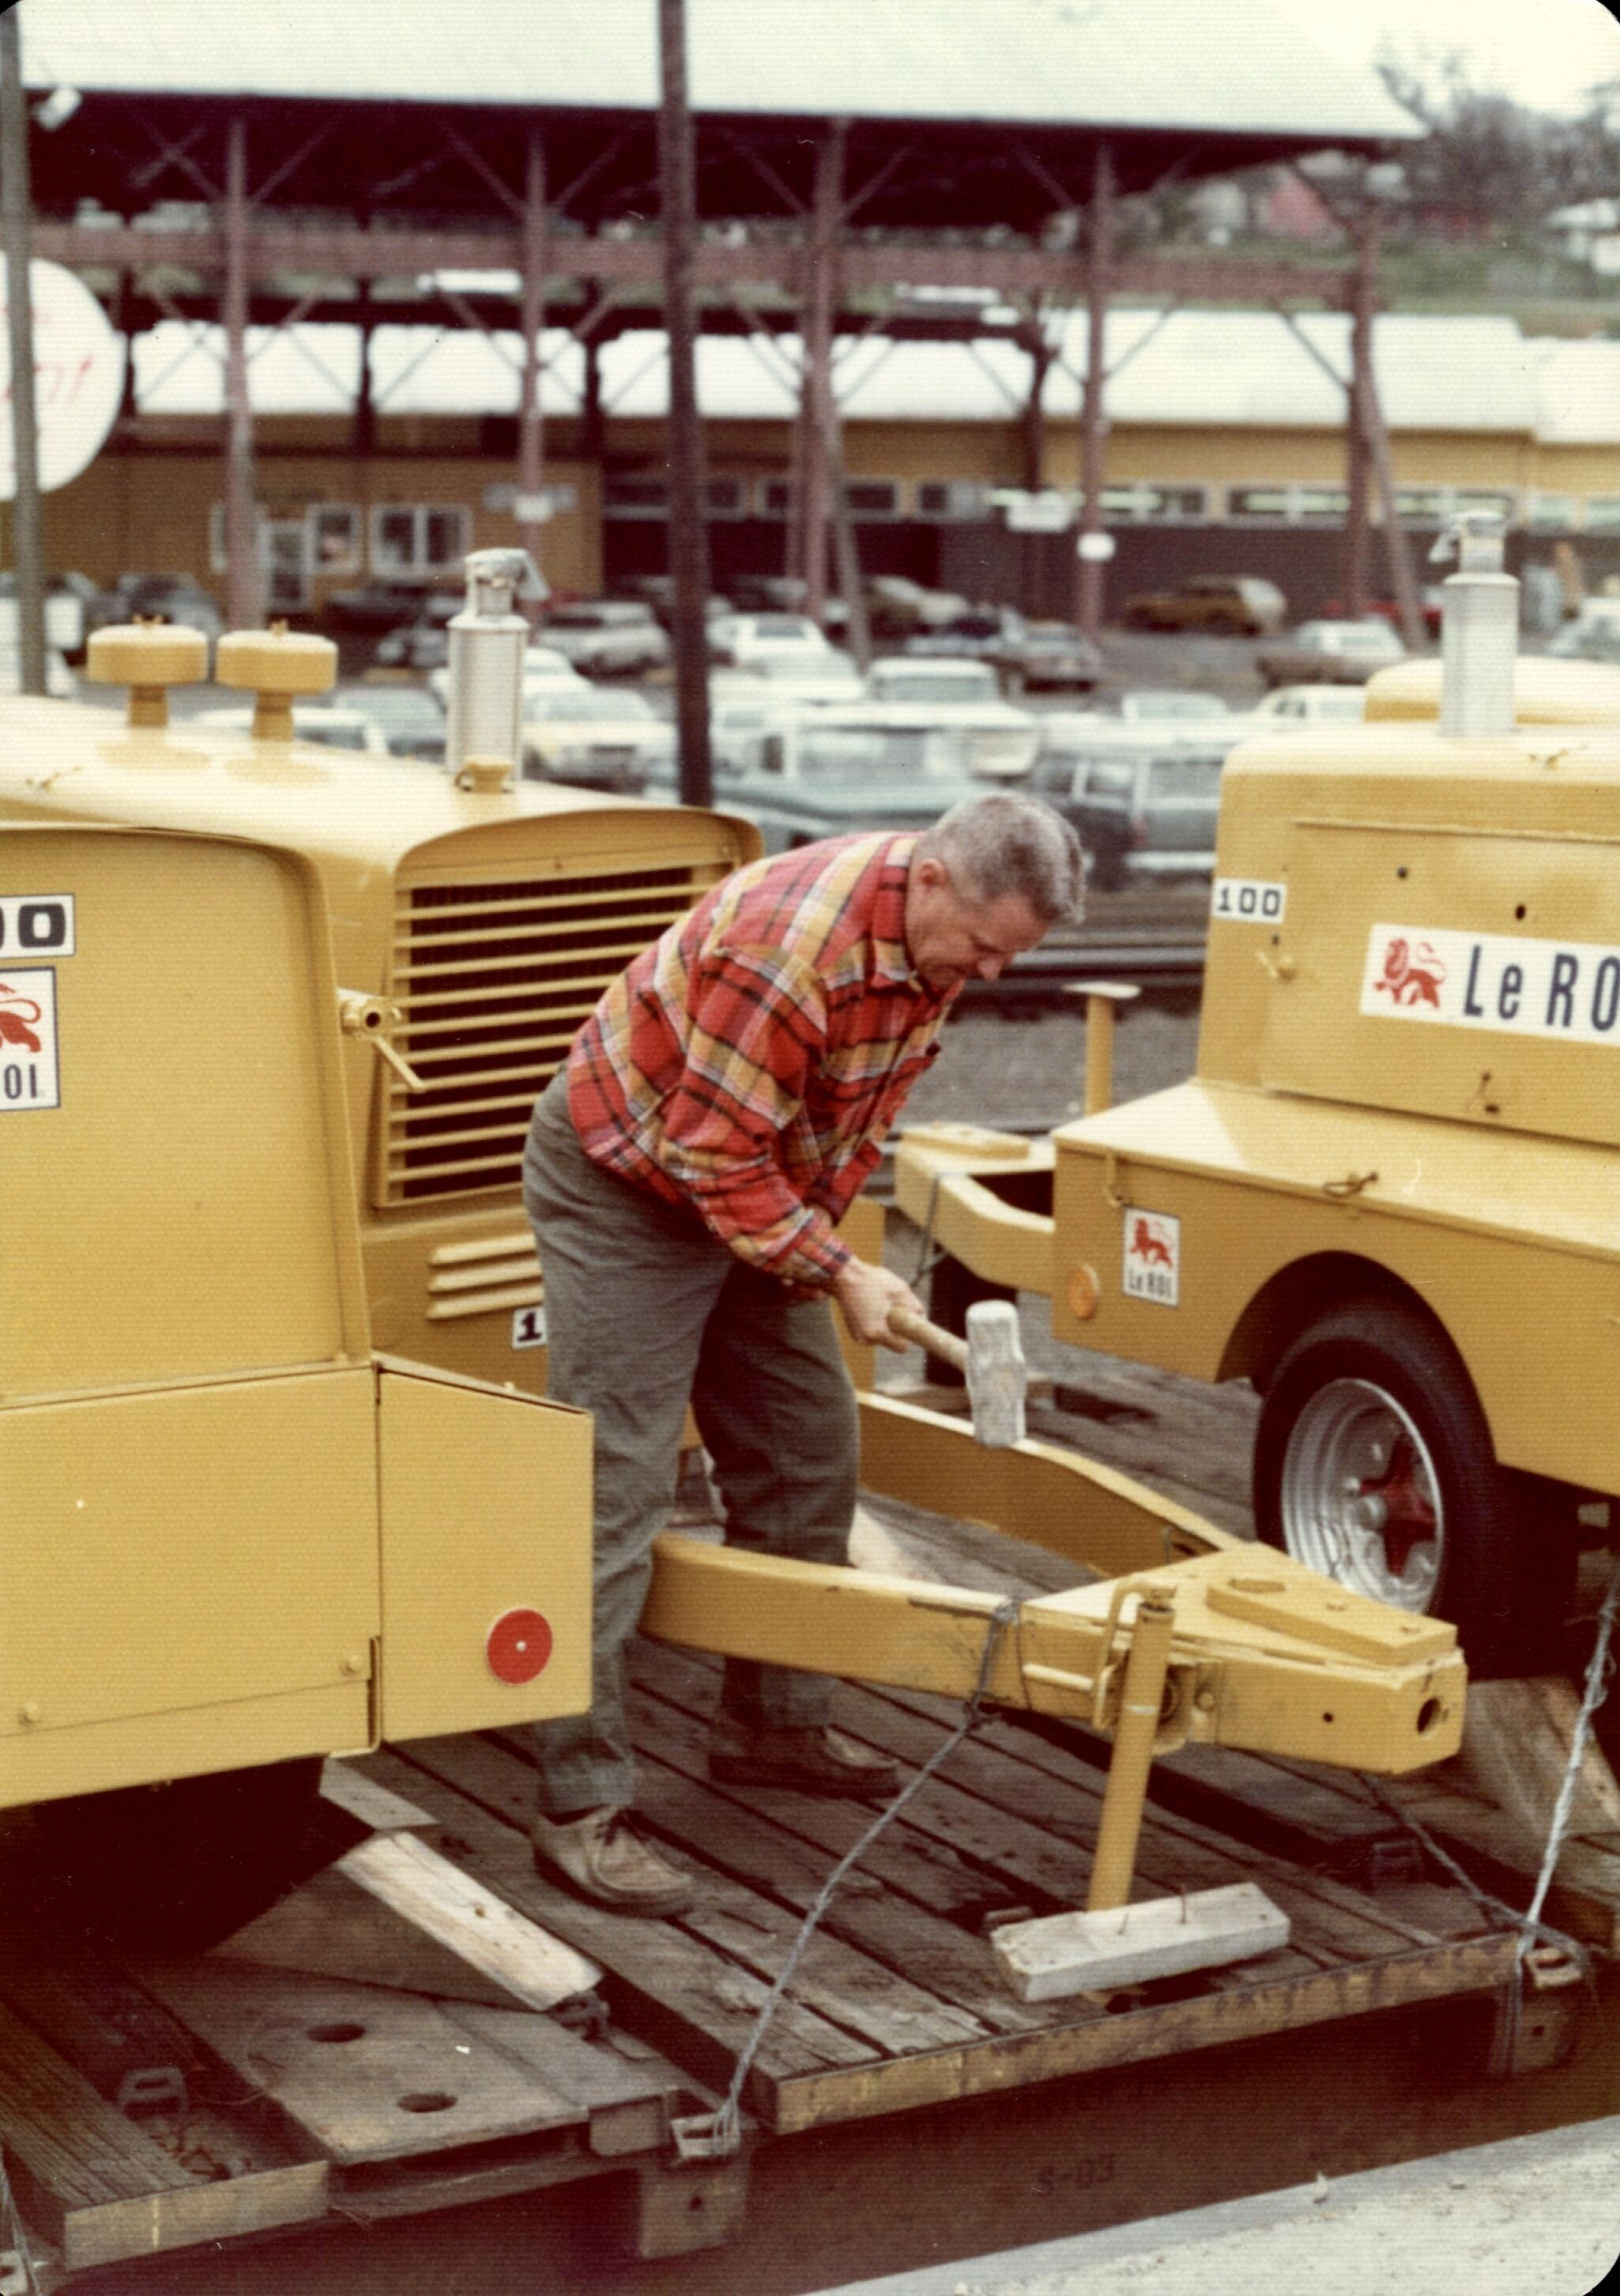 Learn the history of C & E Rentals